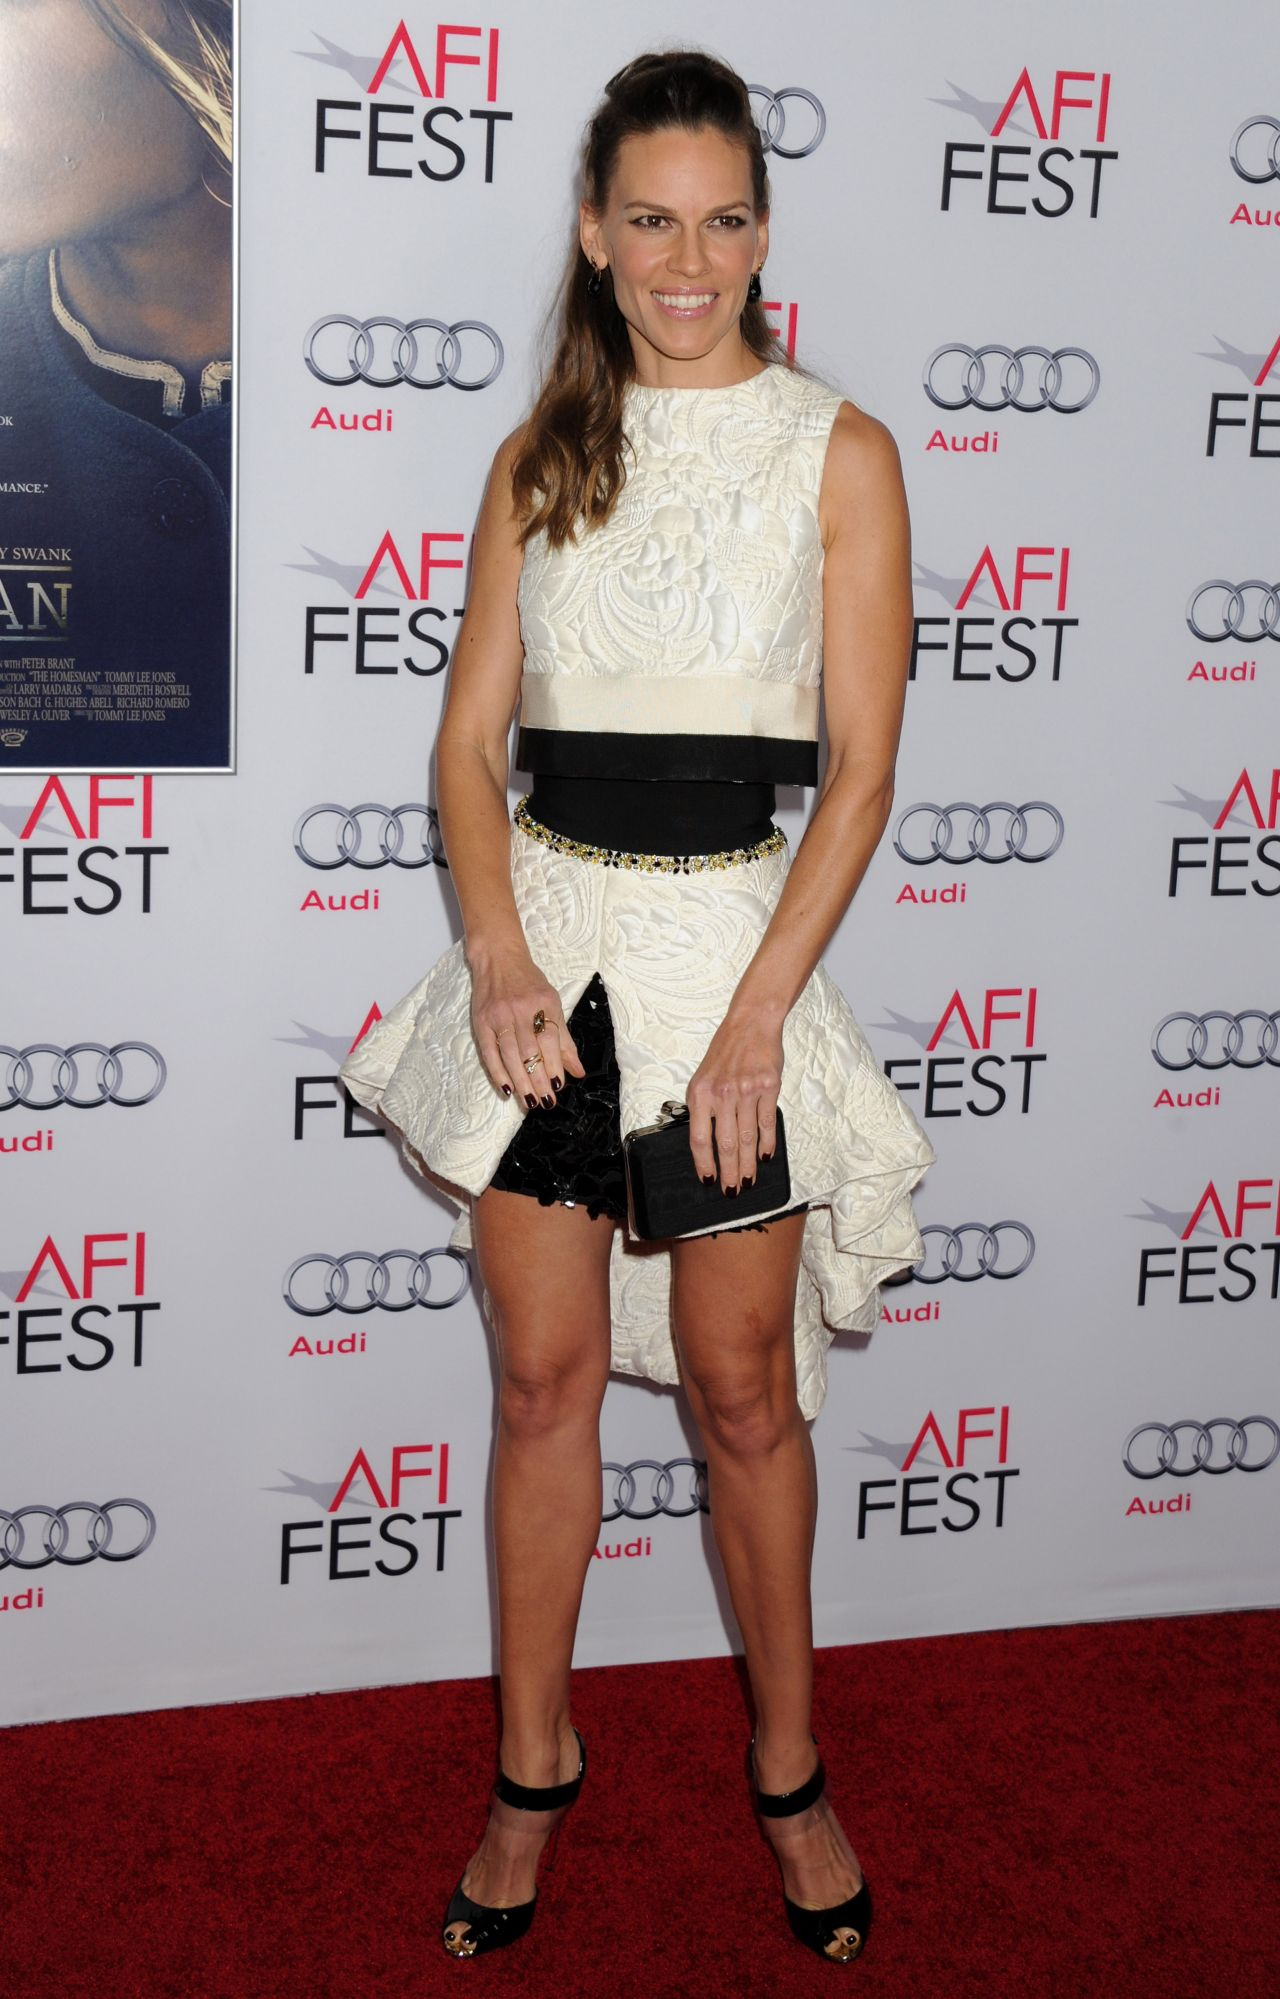 Hilary Swank The Homesman Premiere In Hollywood Afi